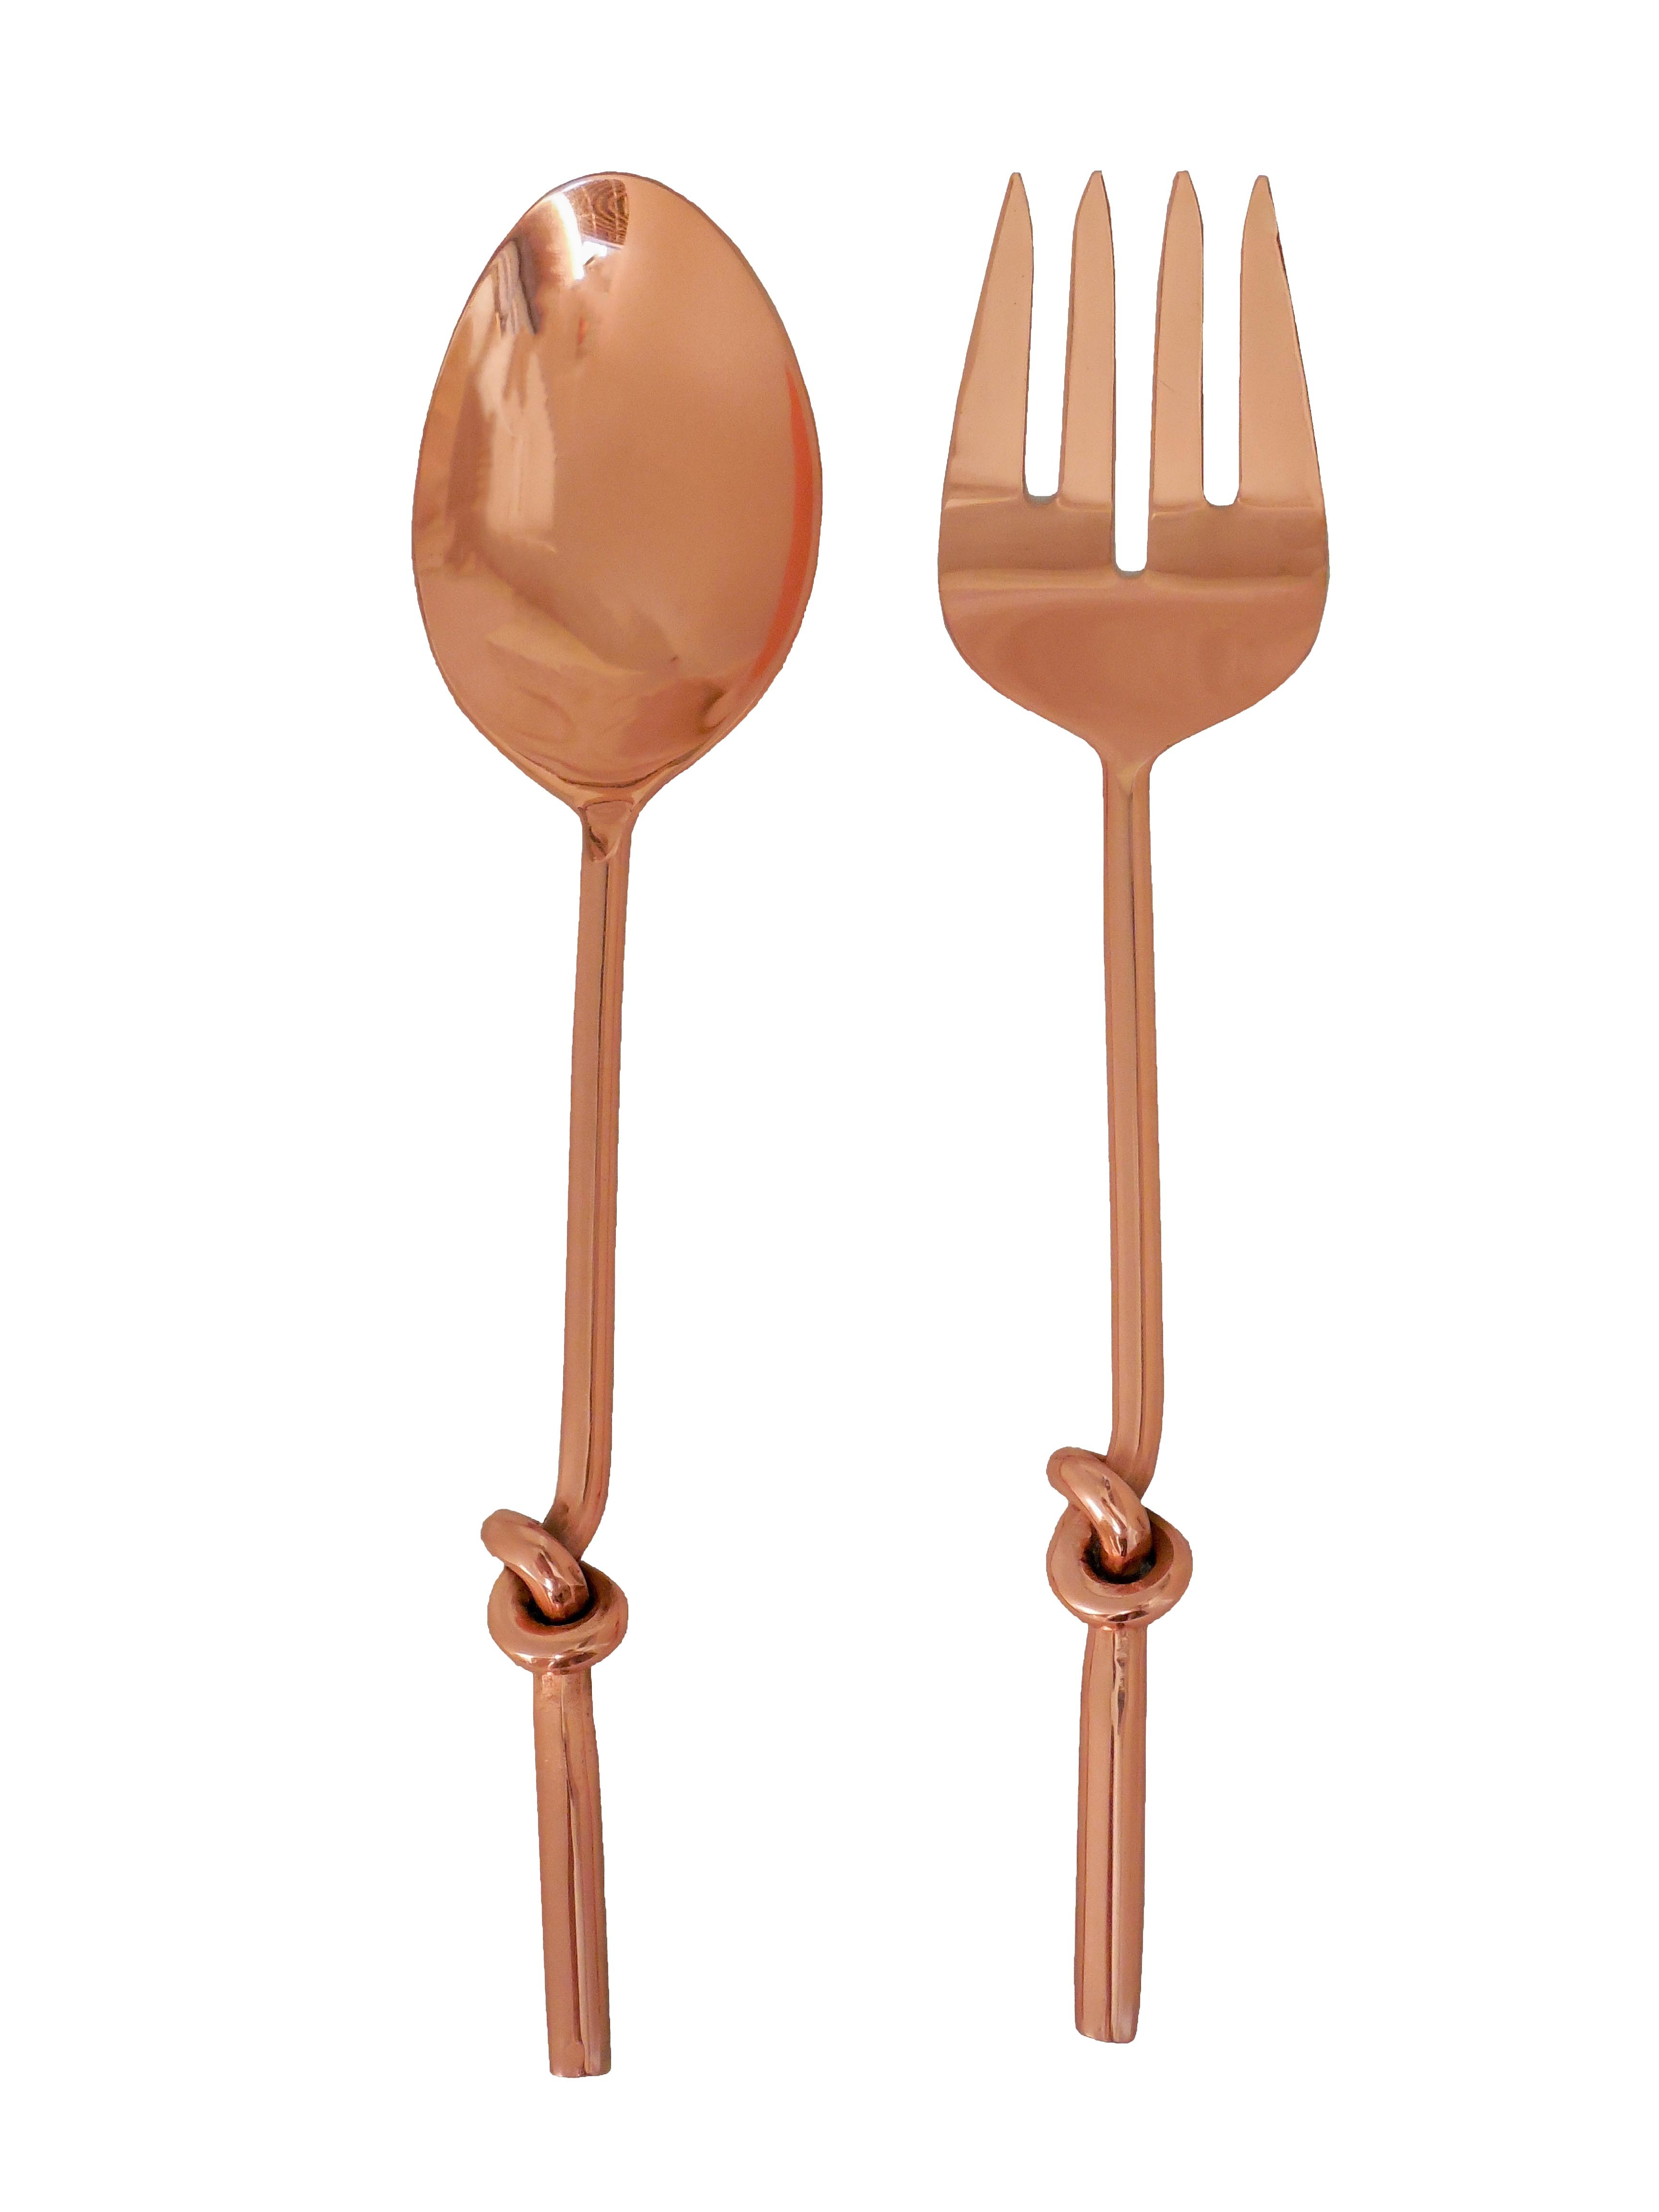 knot serving spoon 2 pcs set 1 pcs spoon and 1 pcs fork copper finish steel